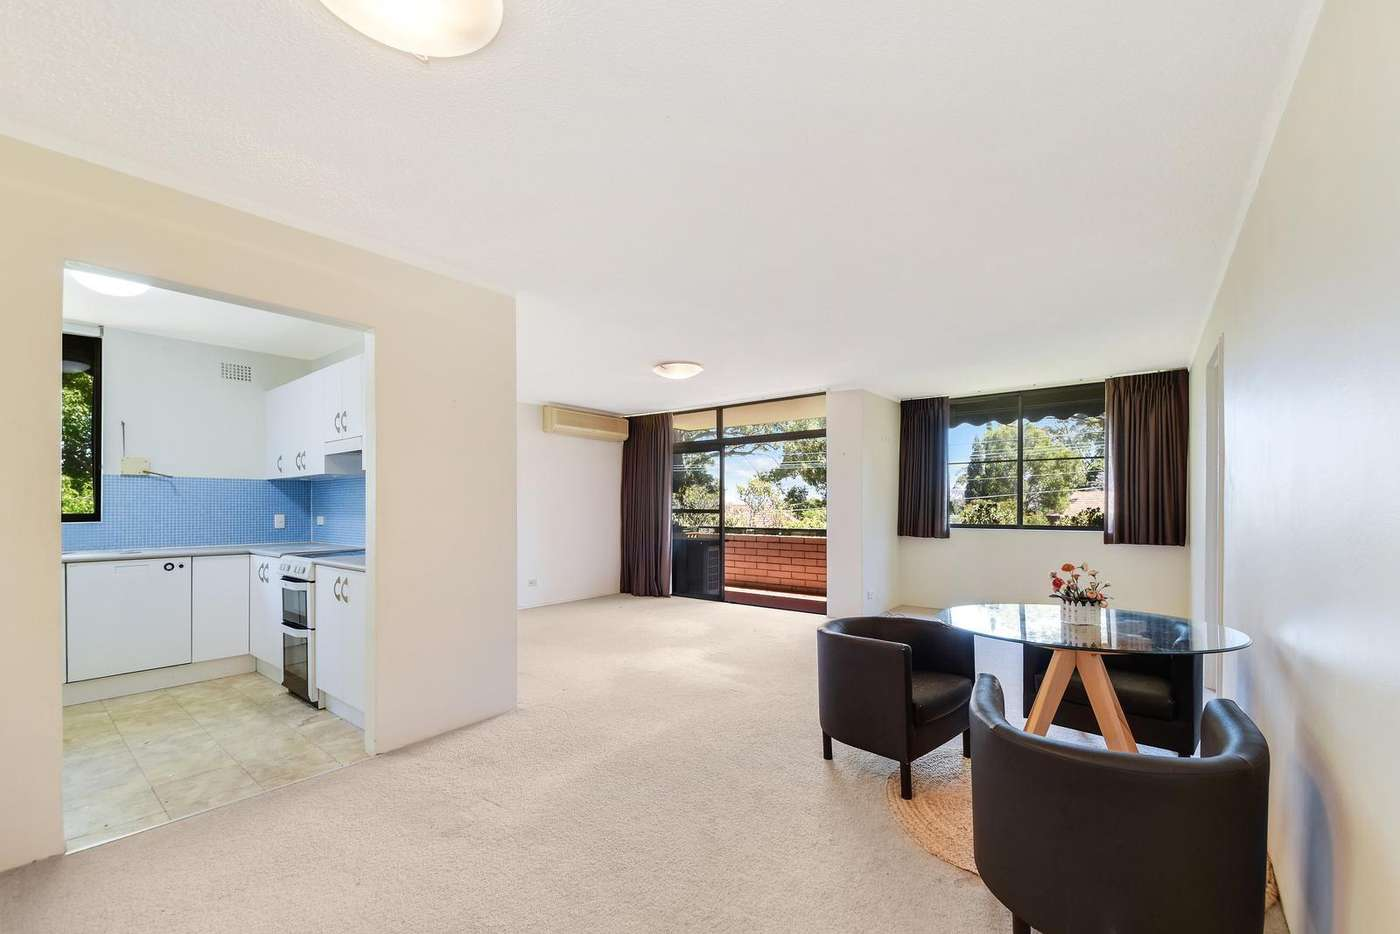 Main view of Homely apartment listing, 20/400 Mowbray Road West, Lane Cove North NSW 2066